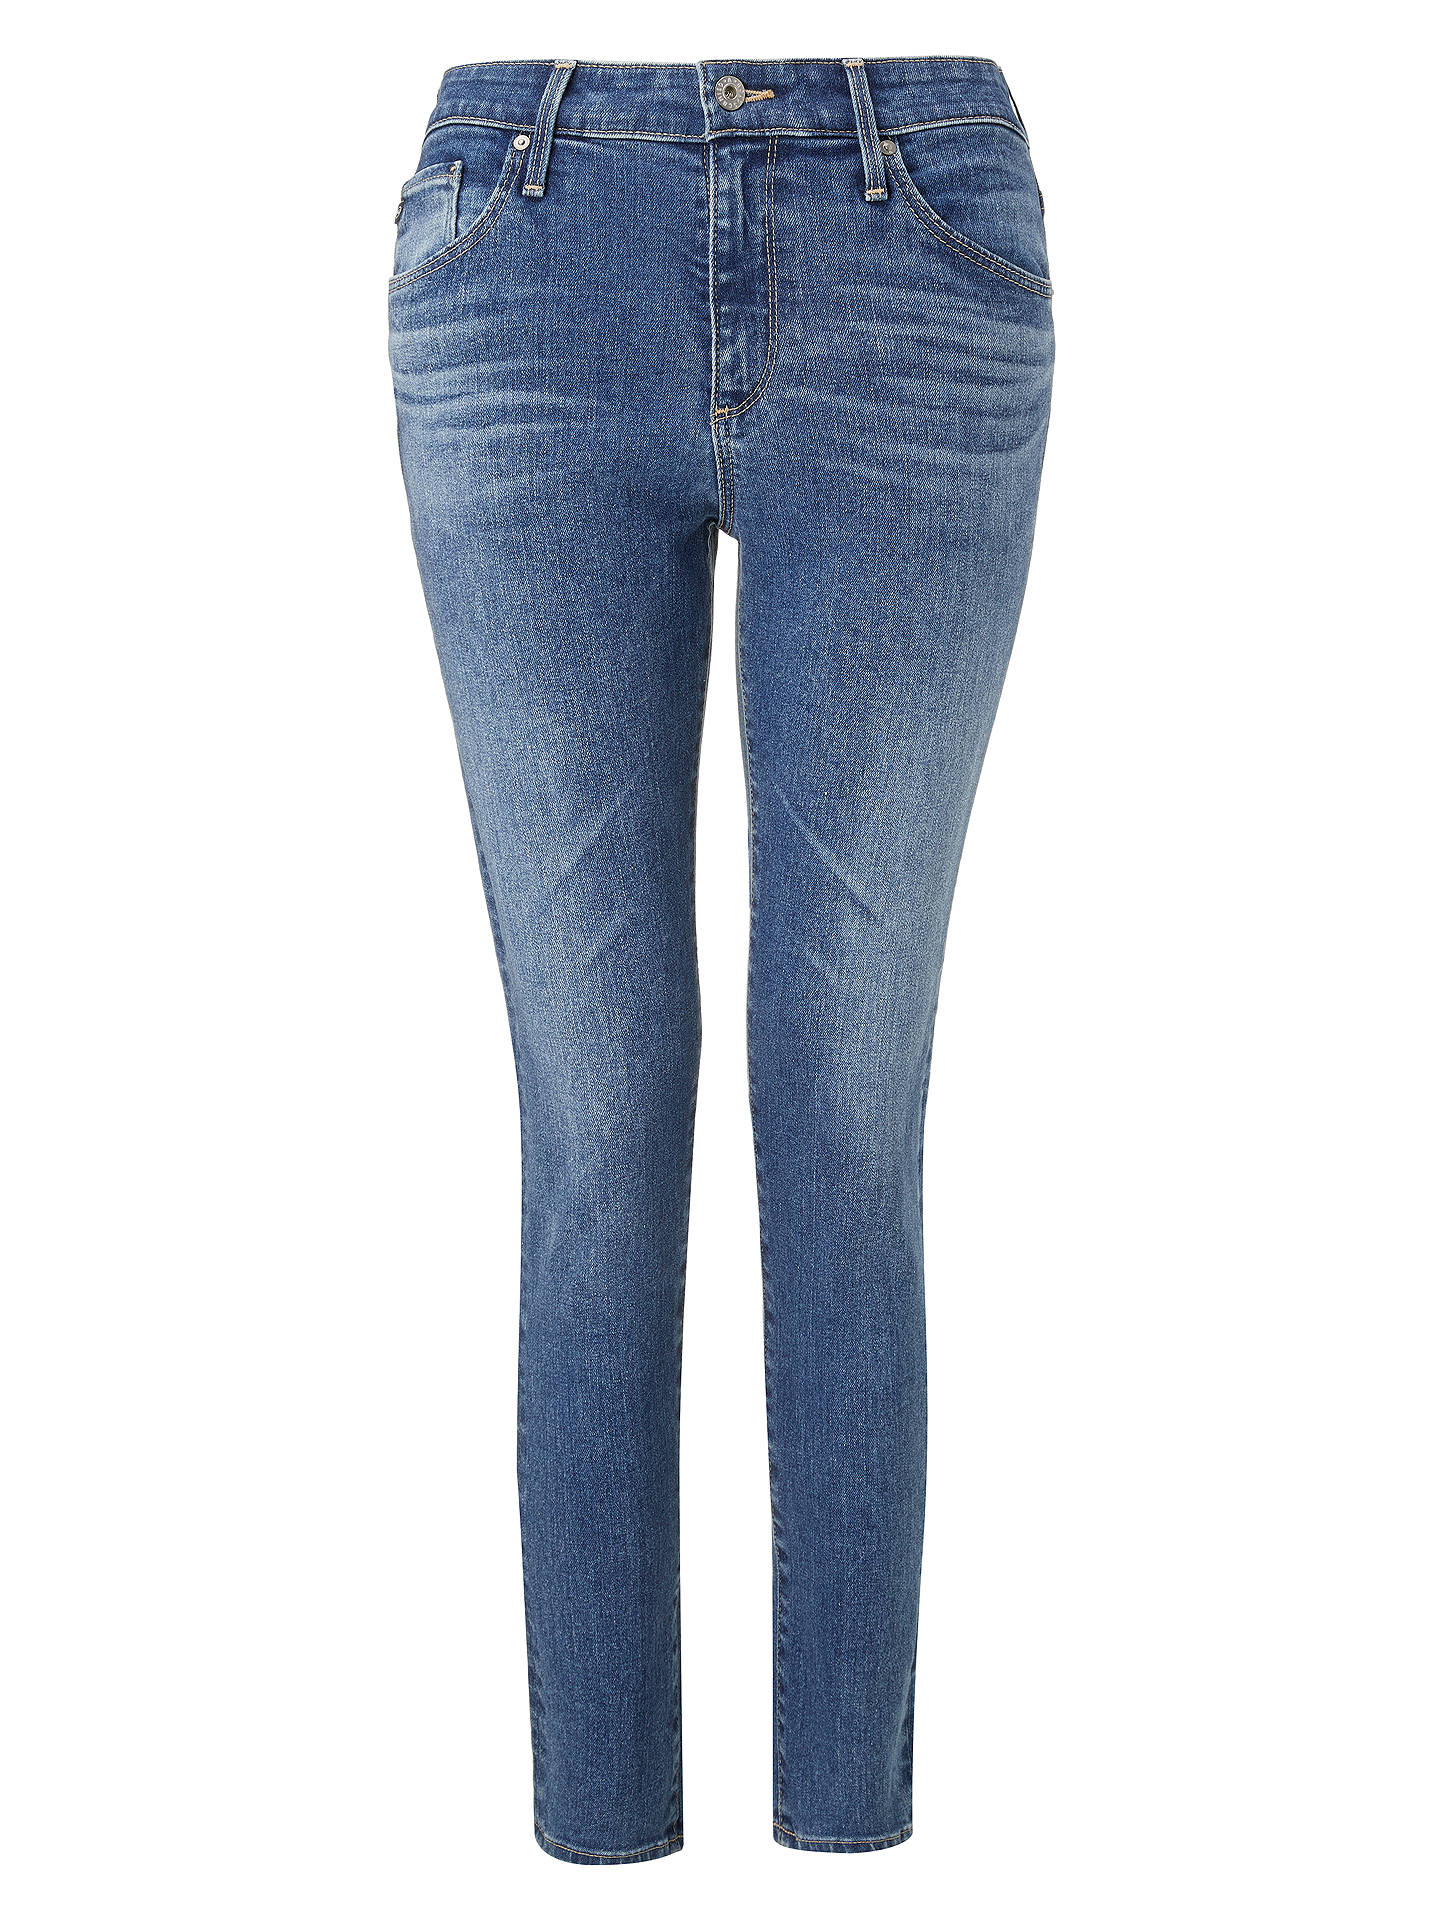 BuyAG The Farrah High Rise Skinny Ankle Jeans, California Blue, 23 Online at johnlewis.com